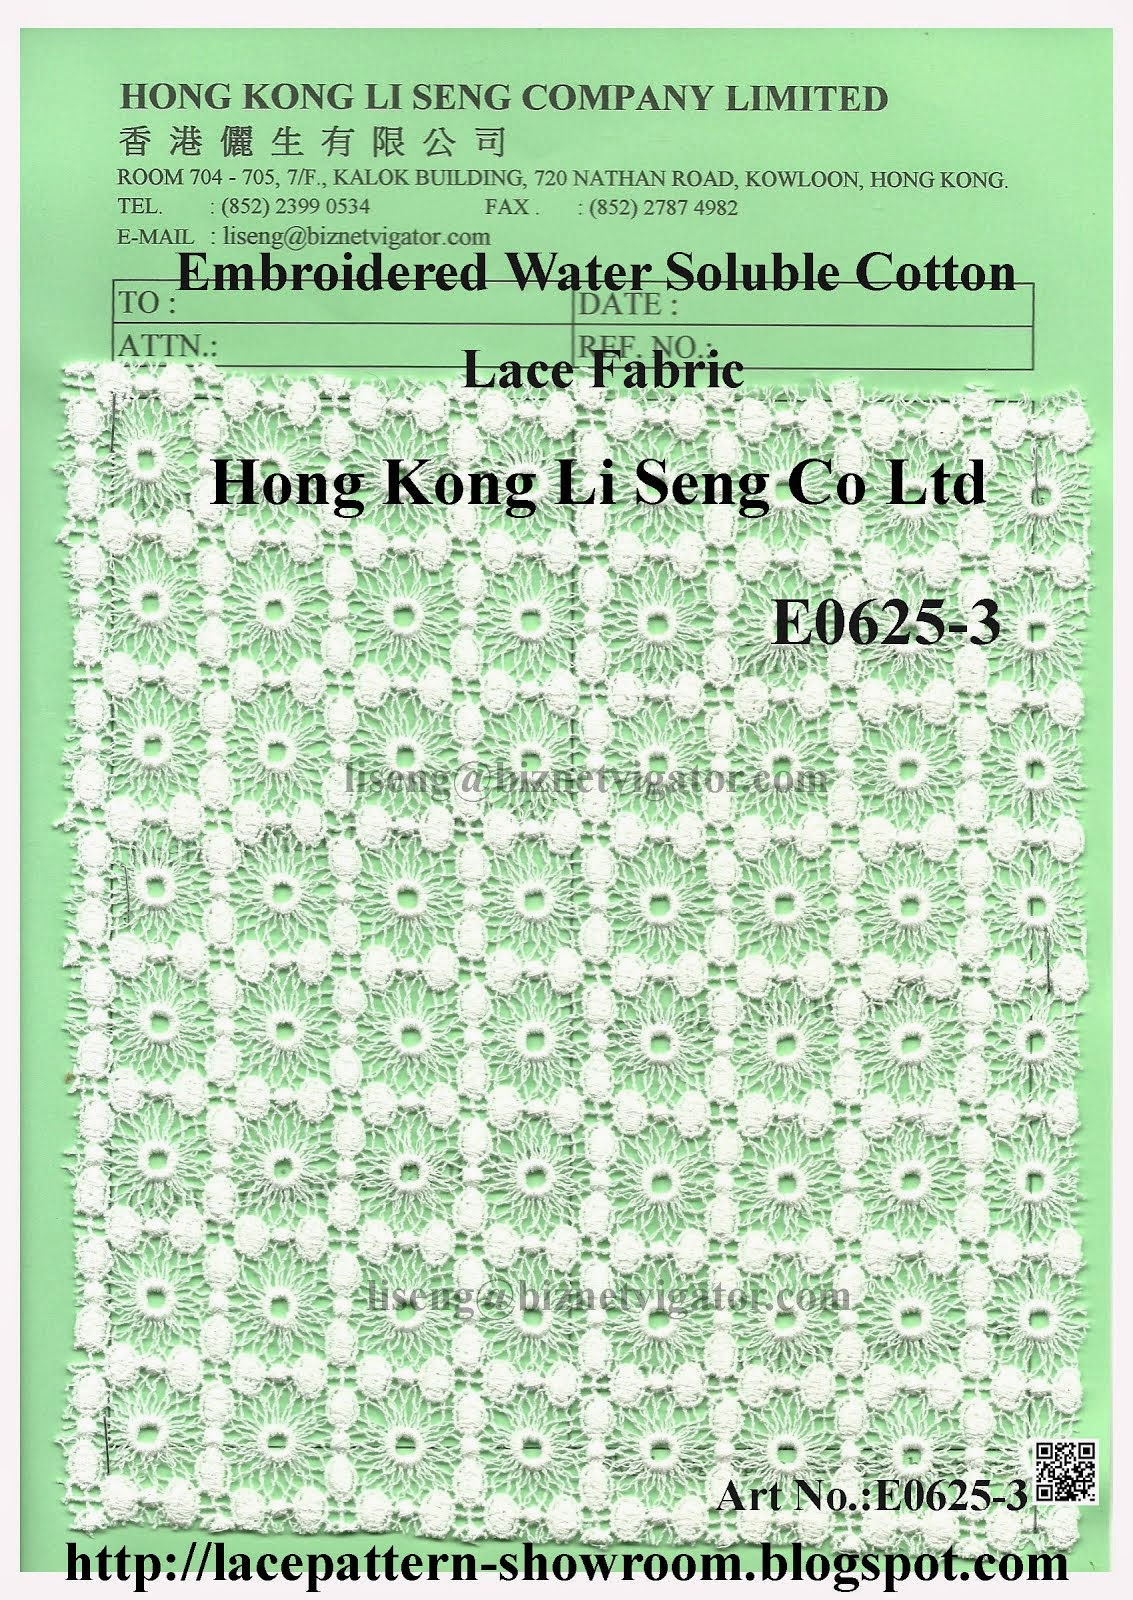 Embroidered Water Soluble Cotton Lace Fabric Manufacturer Wholesaler and Supplier